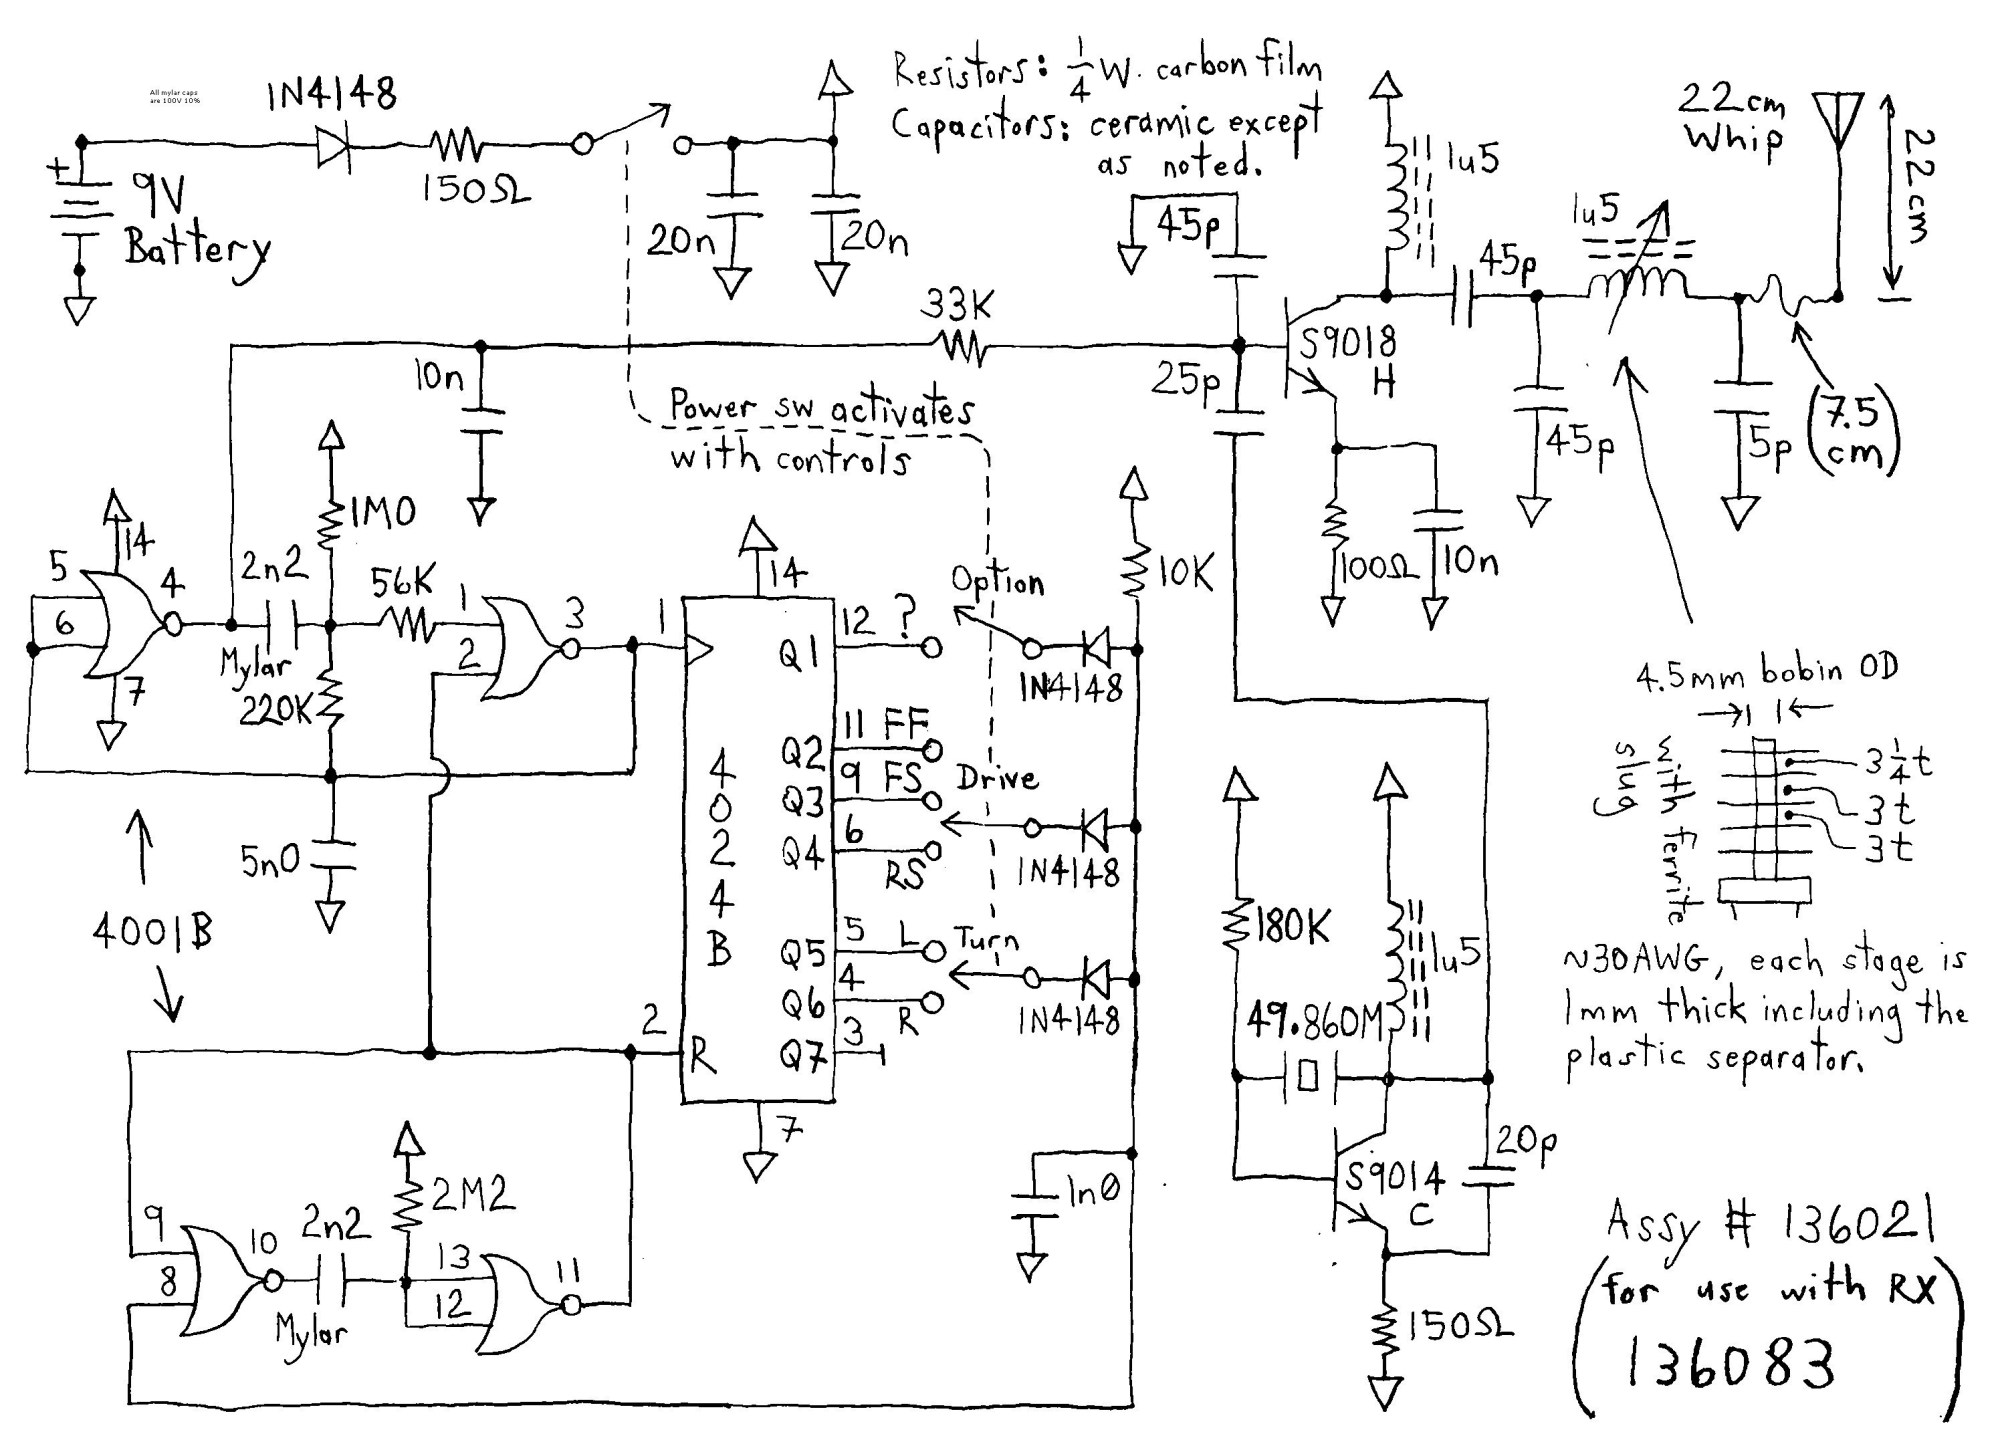 hight resolution of cm hoist wiring diagram wiring diagram for car hoist inspirationa new automotive electrical wiring diagram